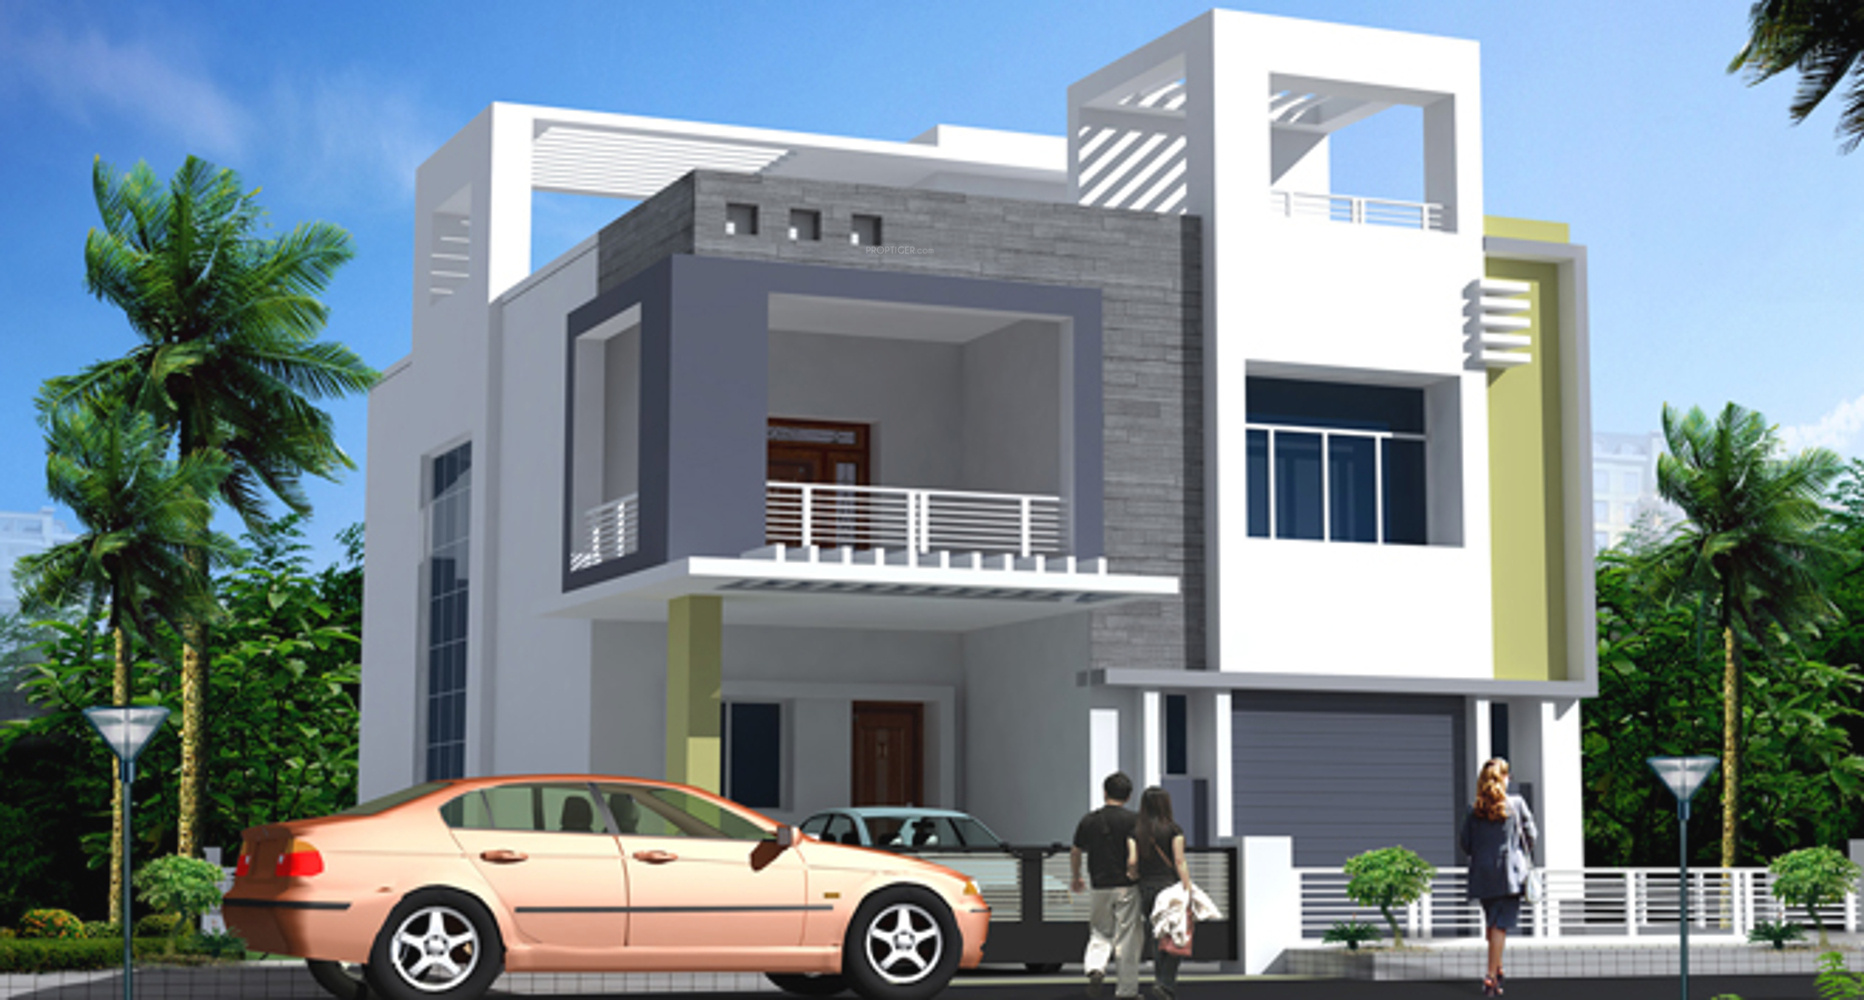 2 Floor Elevation Designs : Main elevation image of saket swarna villas unit